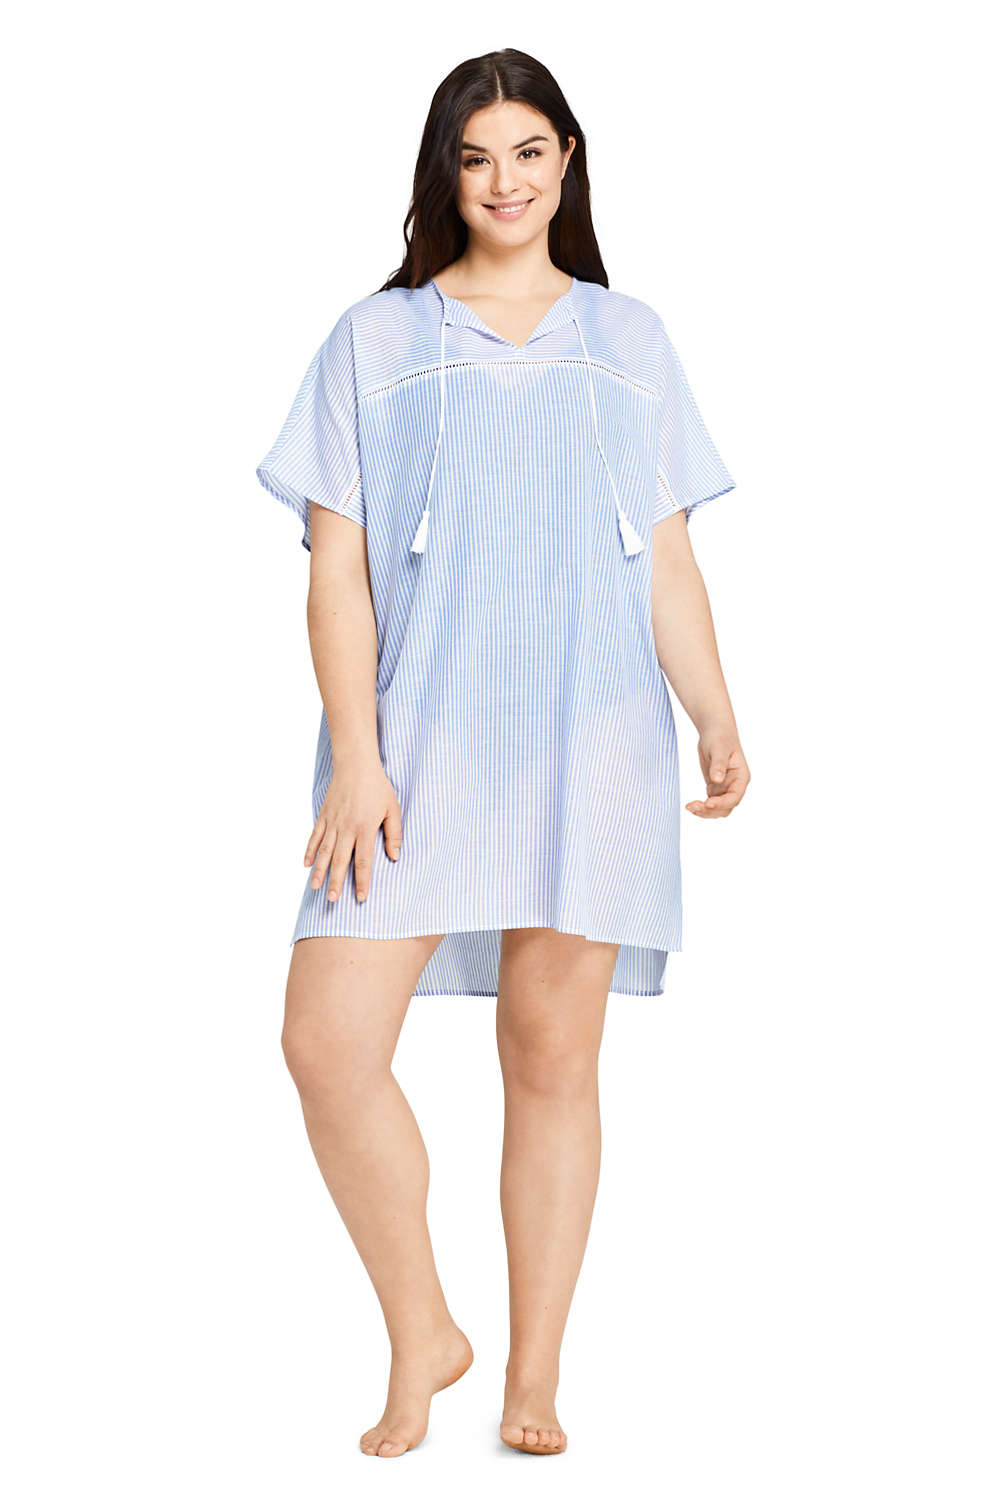 c0793ca373 Women's Plus Size Cotton Voile Short Sleeve Kaftan Swim Cover-up Stripe  from Lands' End